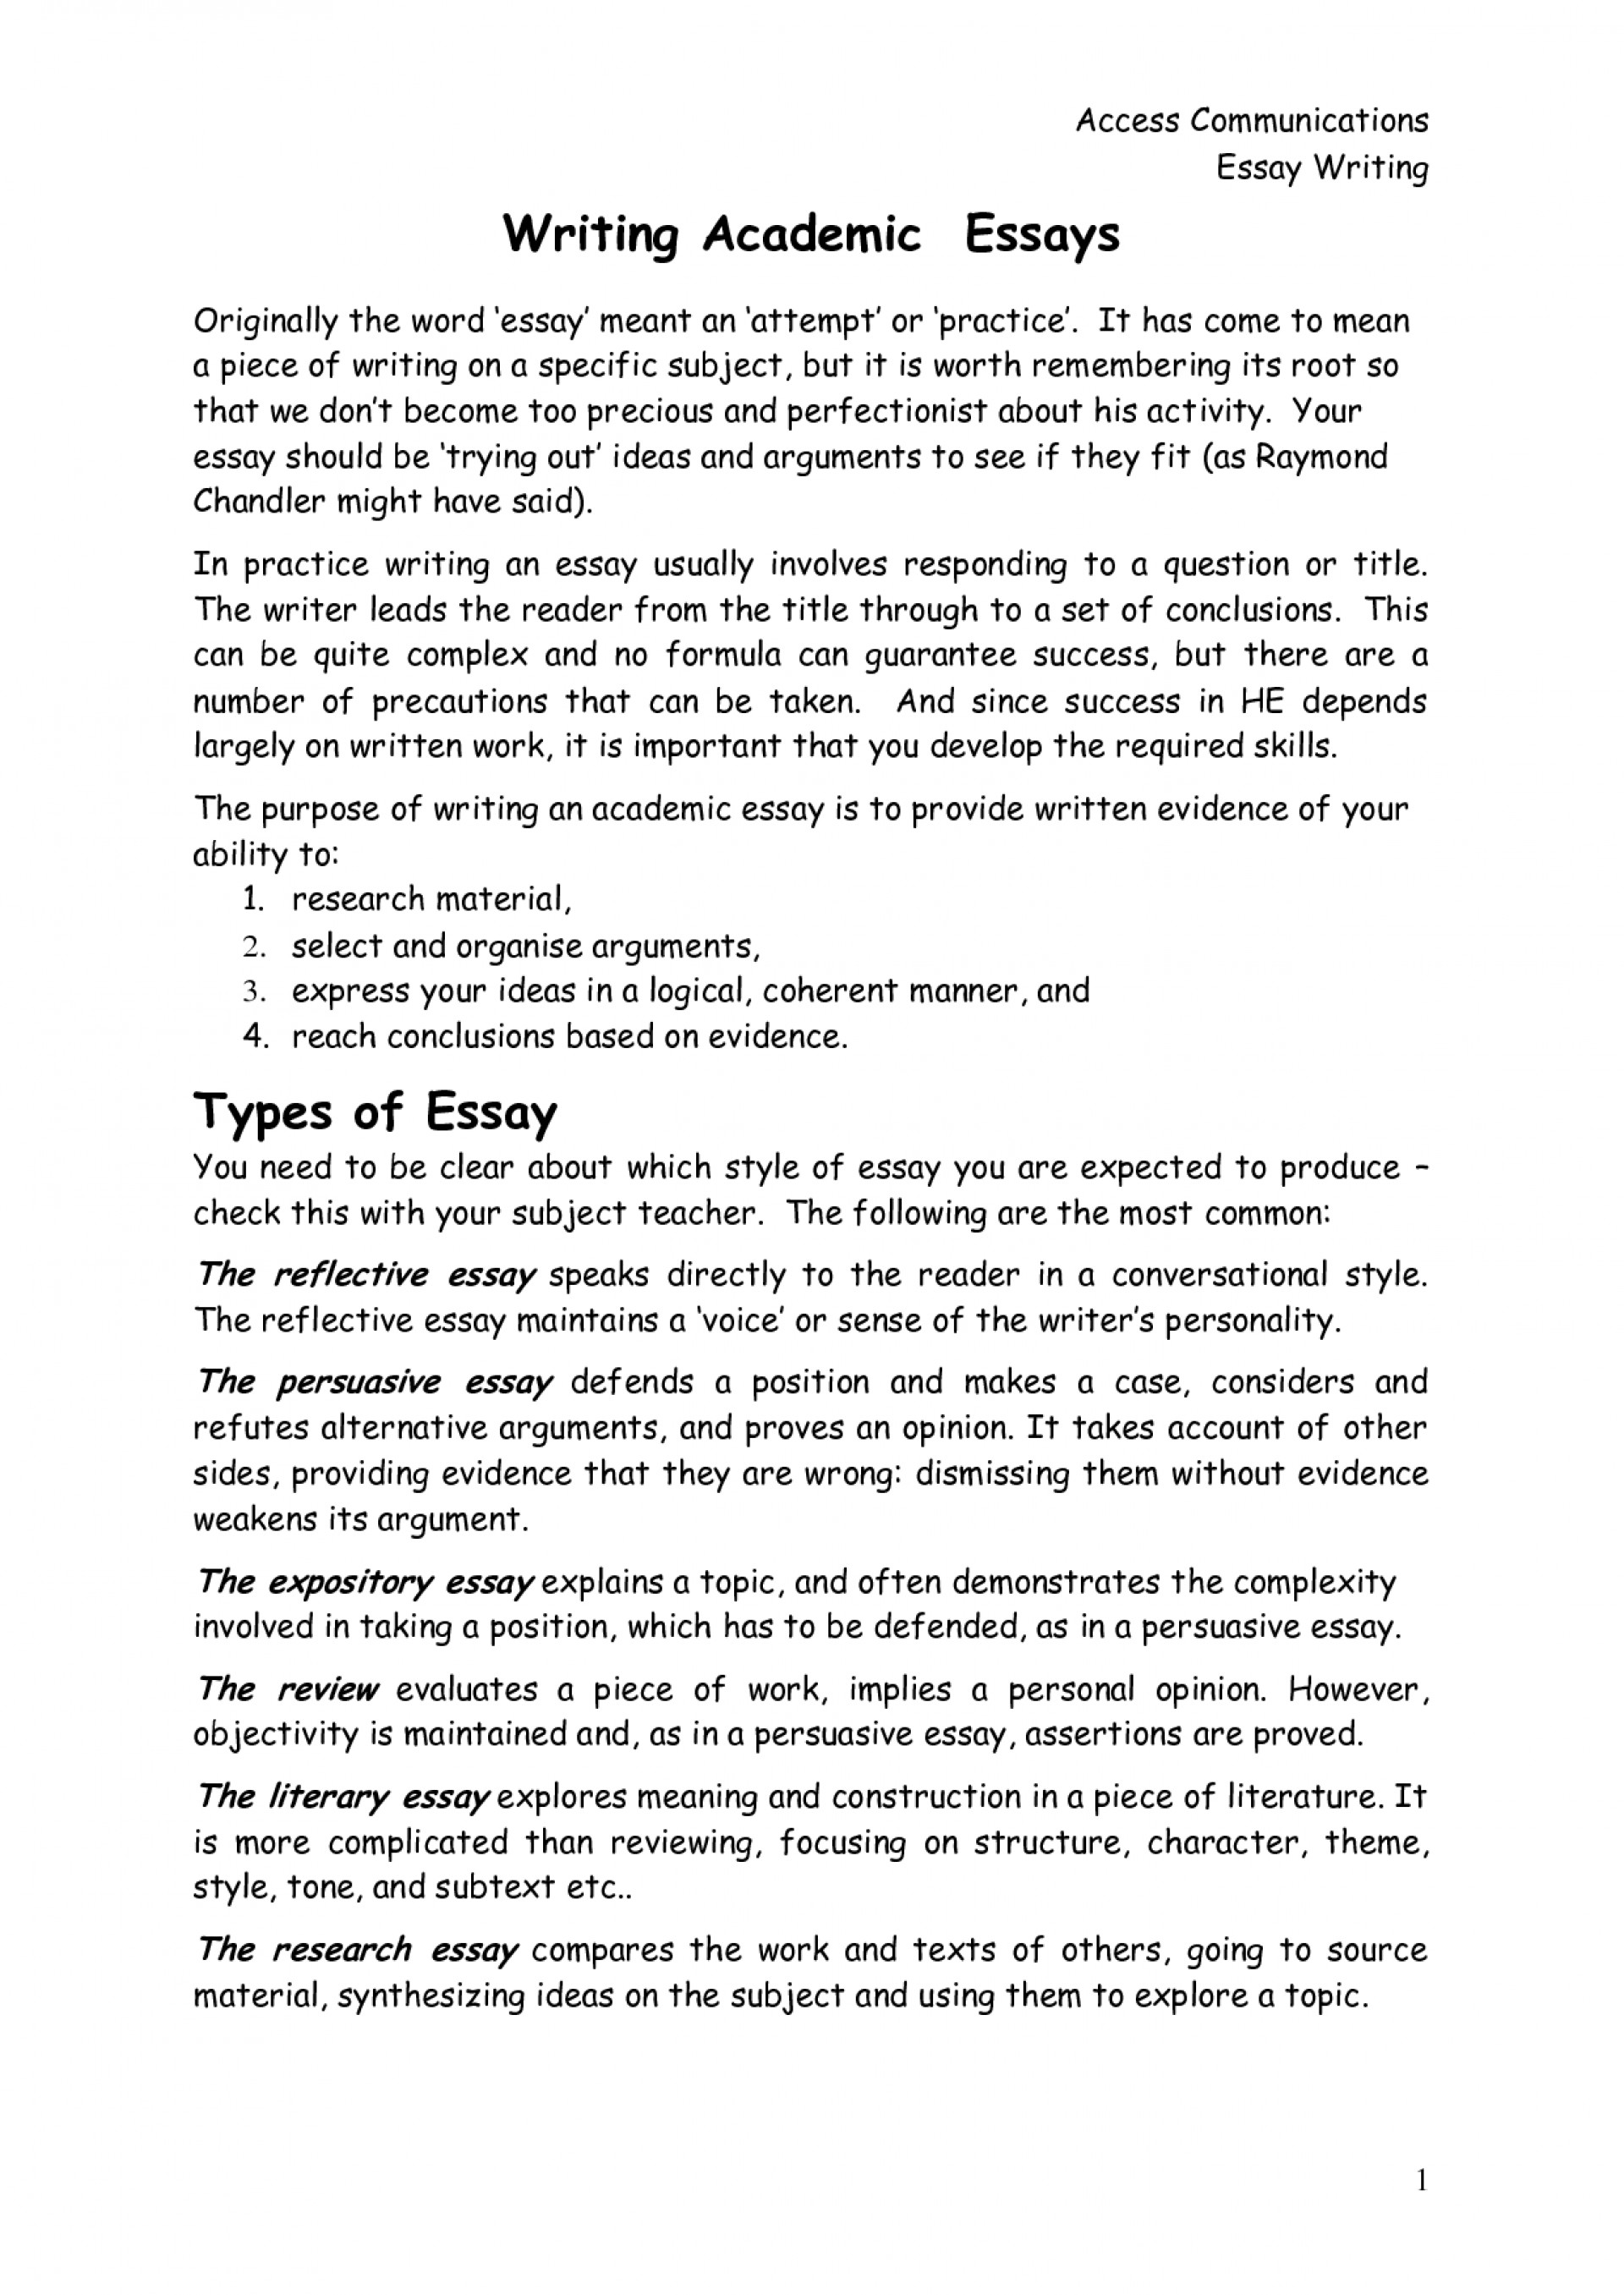 001 Write An Academic Essay Introduction How To Staggering Argumentative Pdf Ppt Effective Title 1920